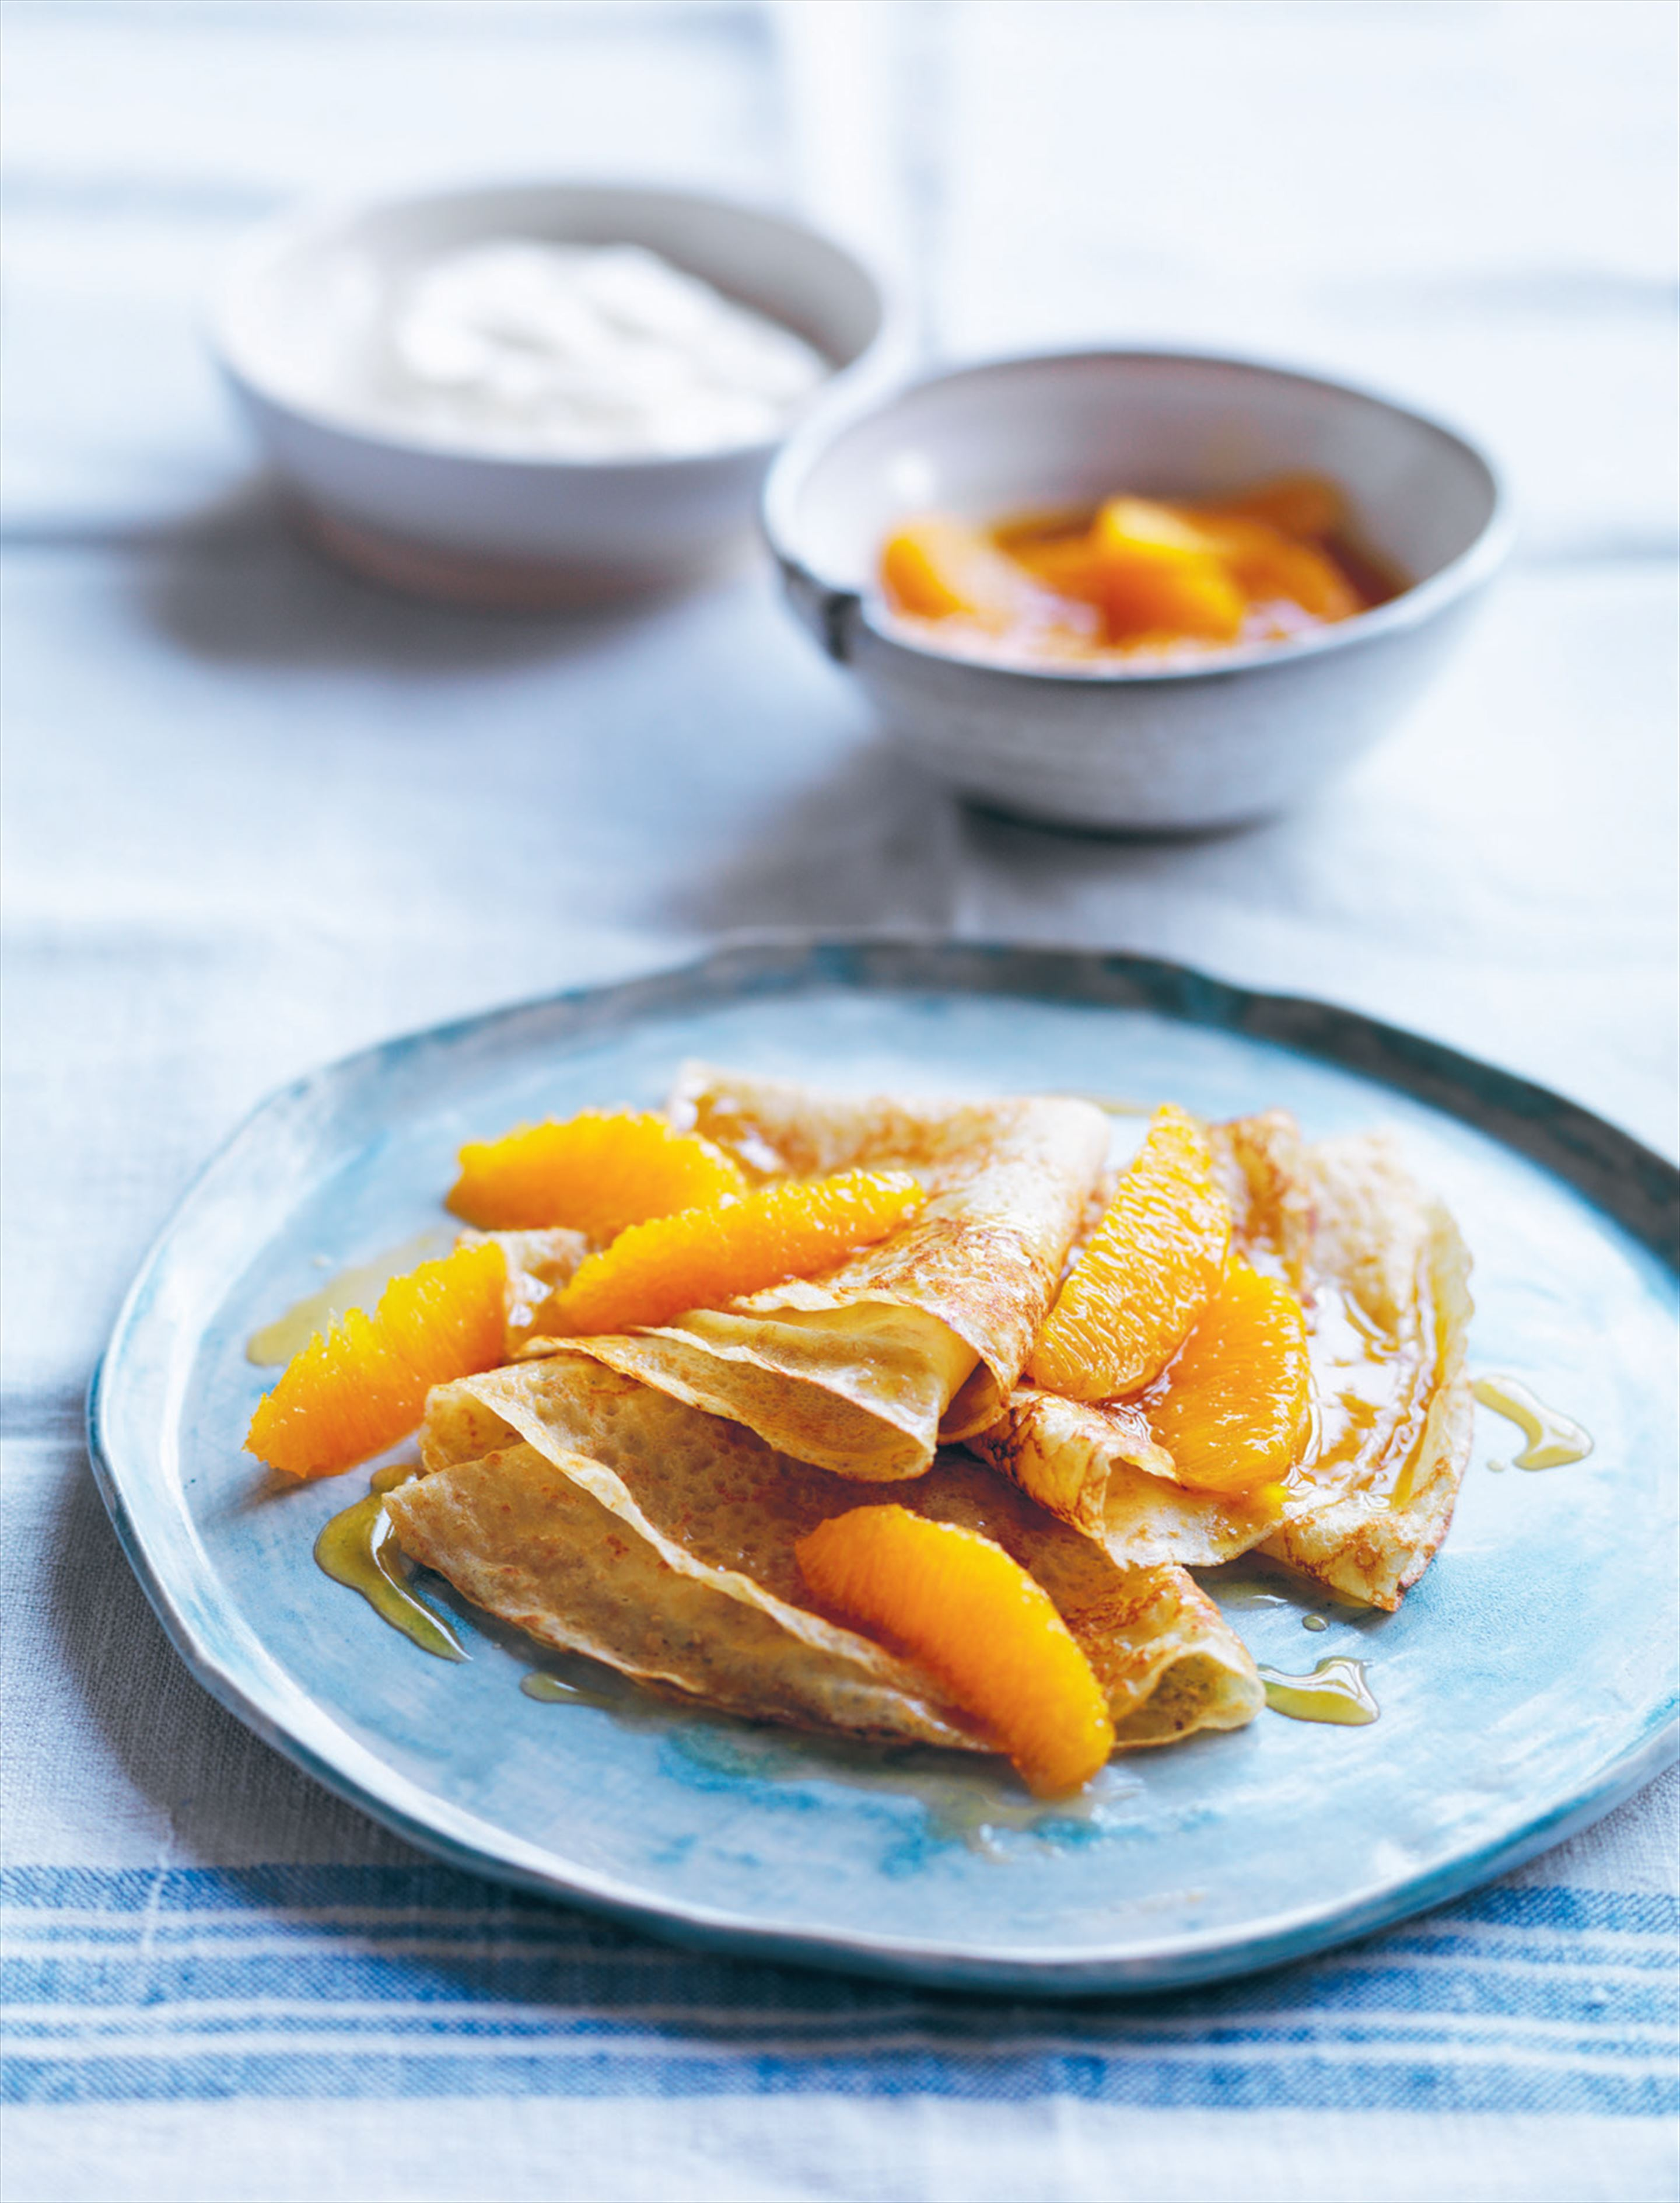 Crêpes with warm maple oranges